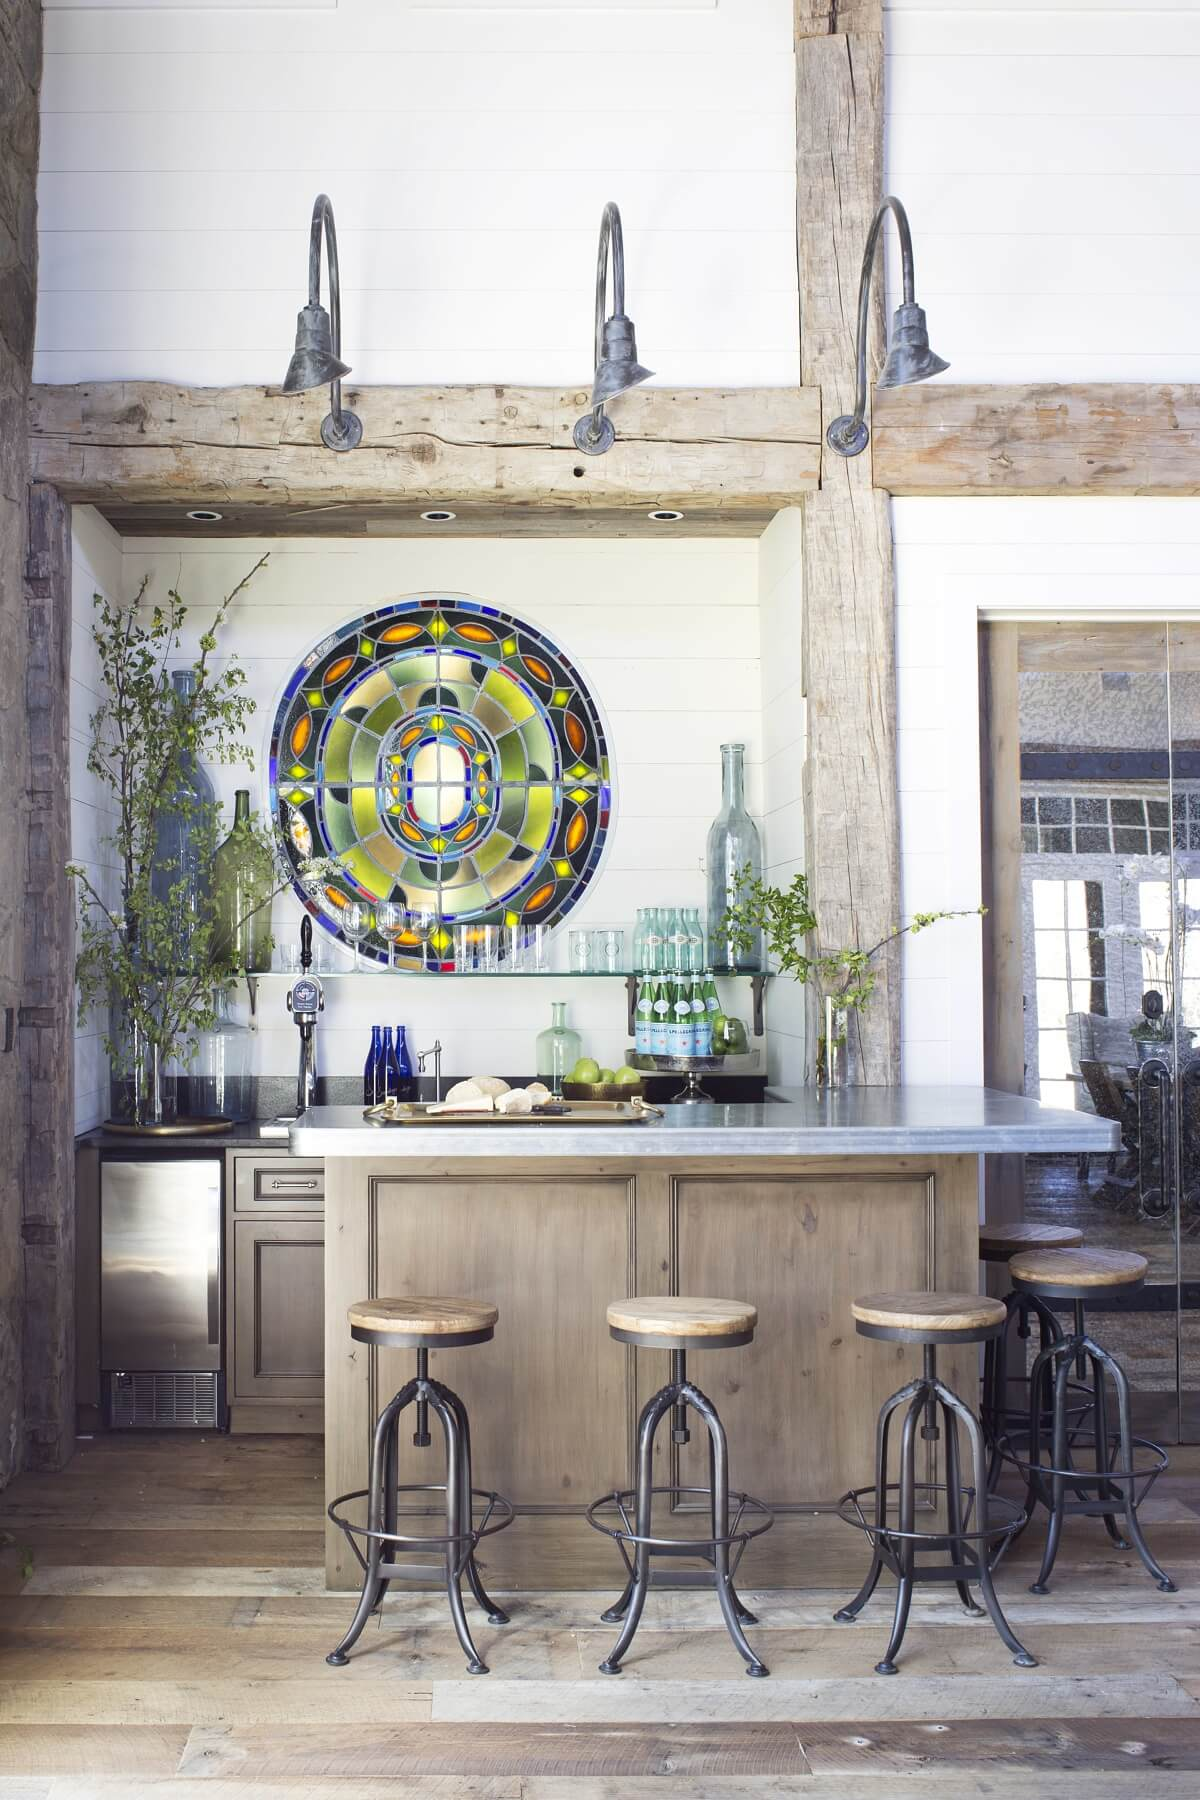 Behind the built-in wet bar, the design team installed a stained glass window that hails from the chapel of a historic Memphis building. It's embedded in the wall and backlit for maximum effect.